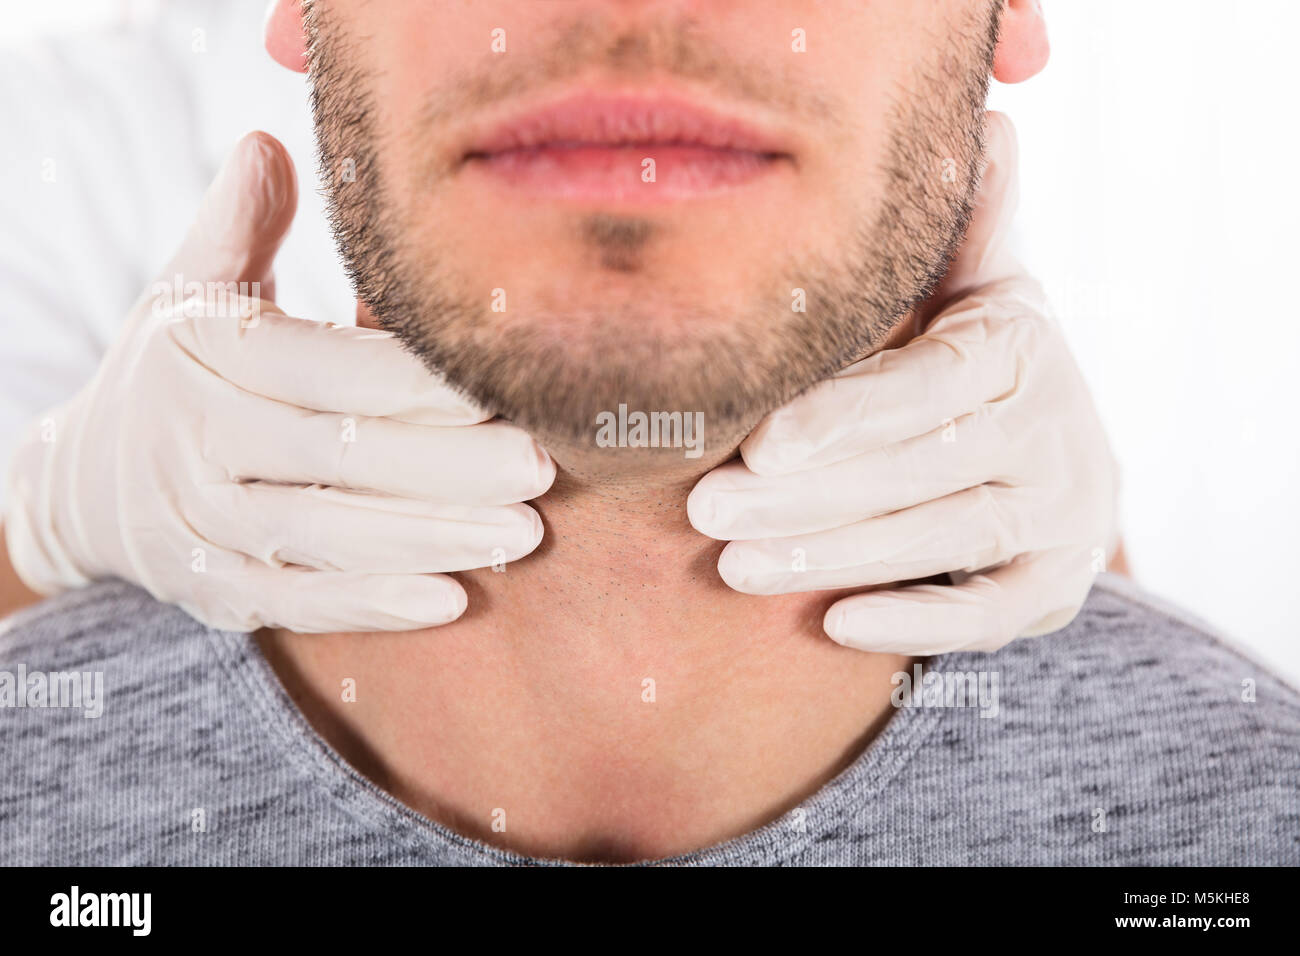 Doctor Performing Physical Exam Palpation Of The Thyroid Gland Stock Photo